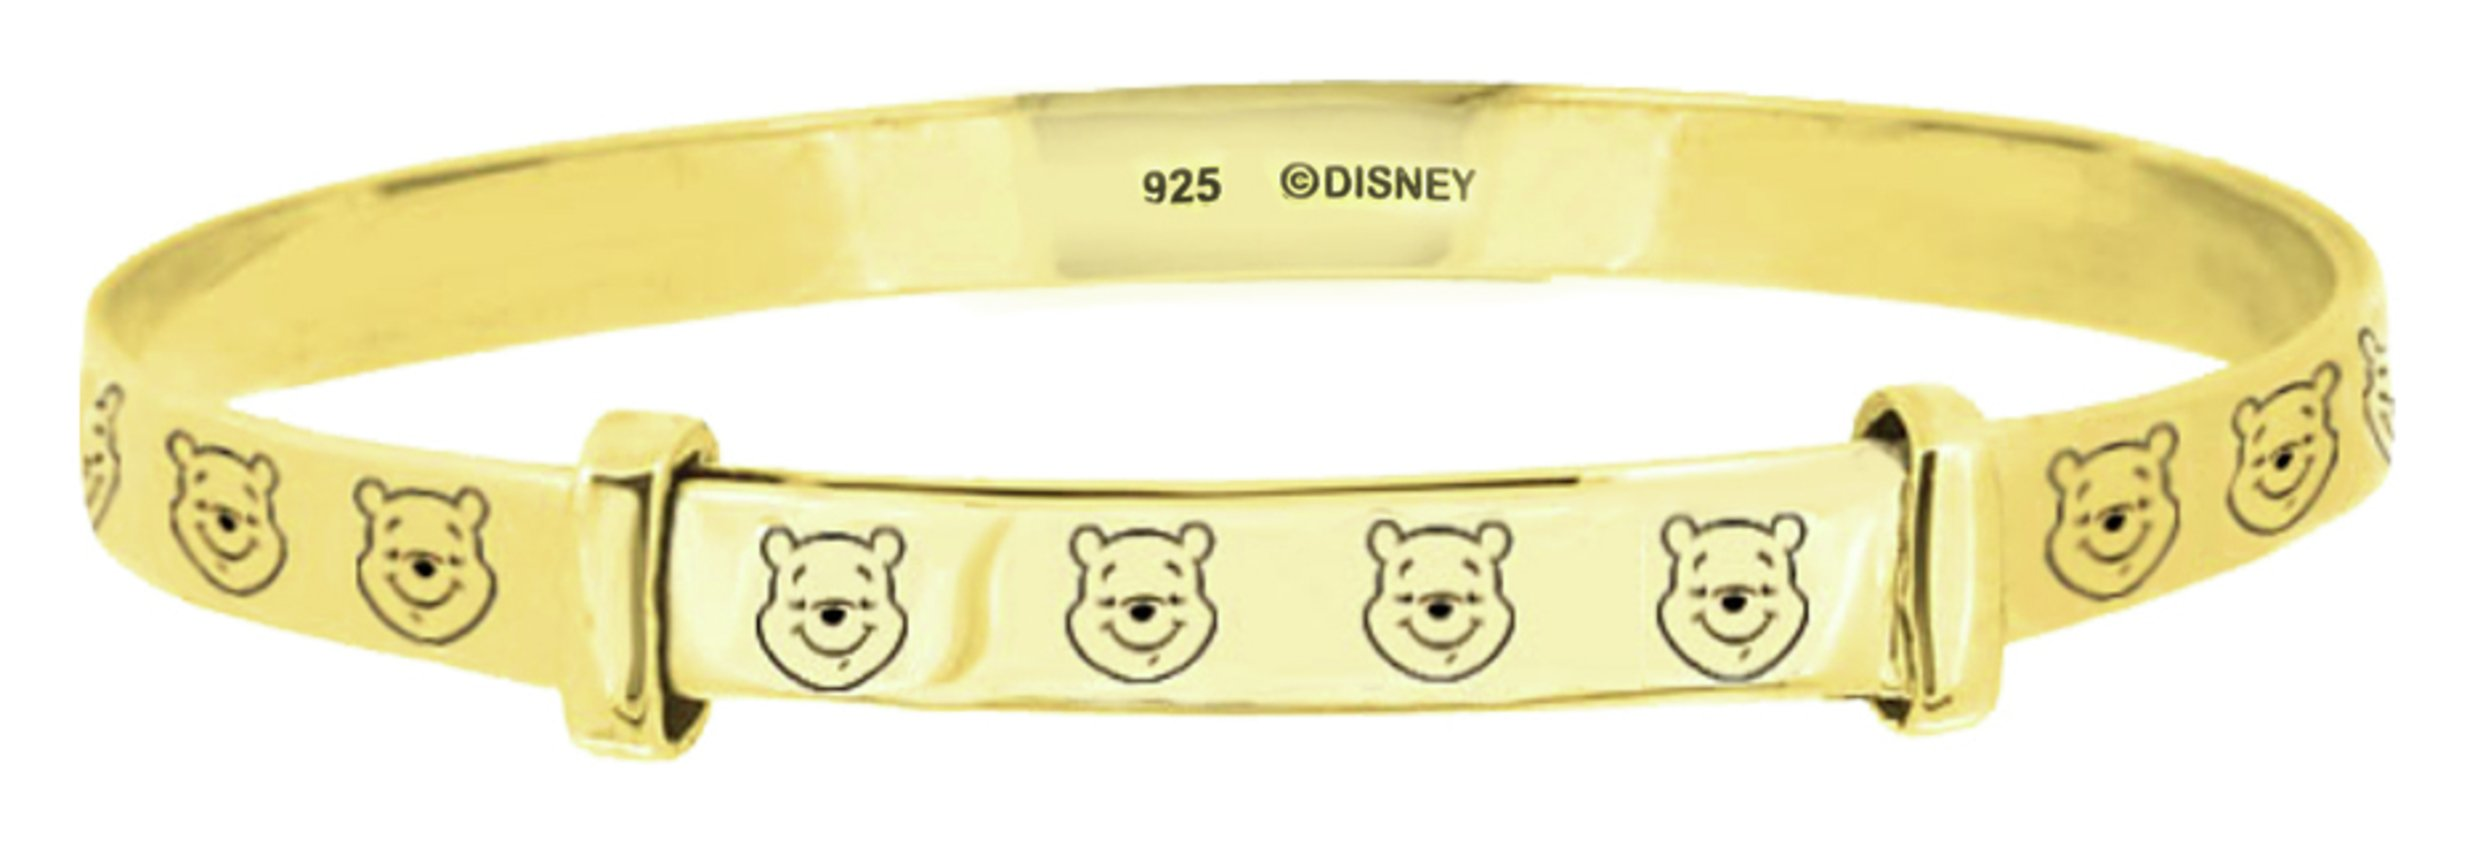 Disney 9ct Gold Plated Winnie the Pooh Bangle - 0-18 Months